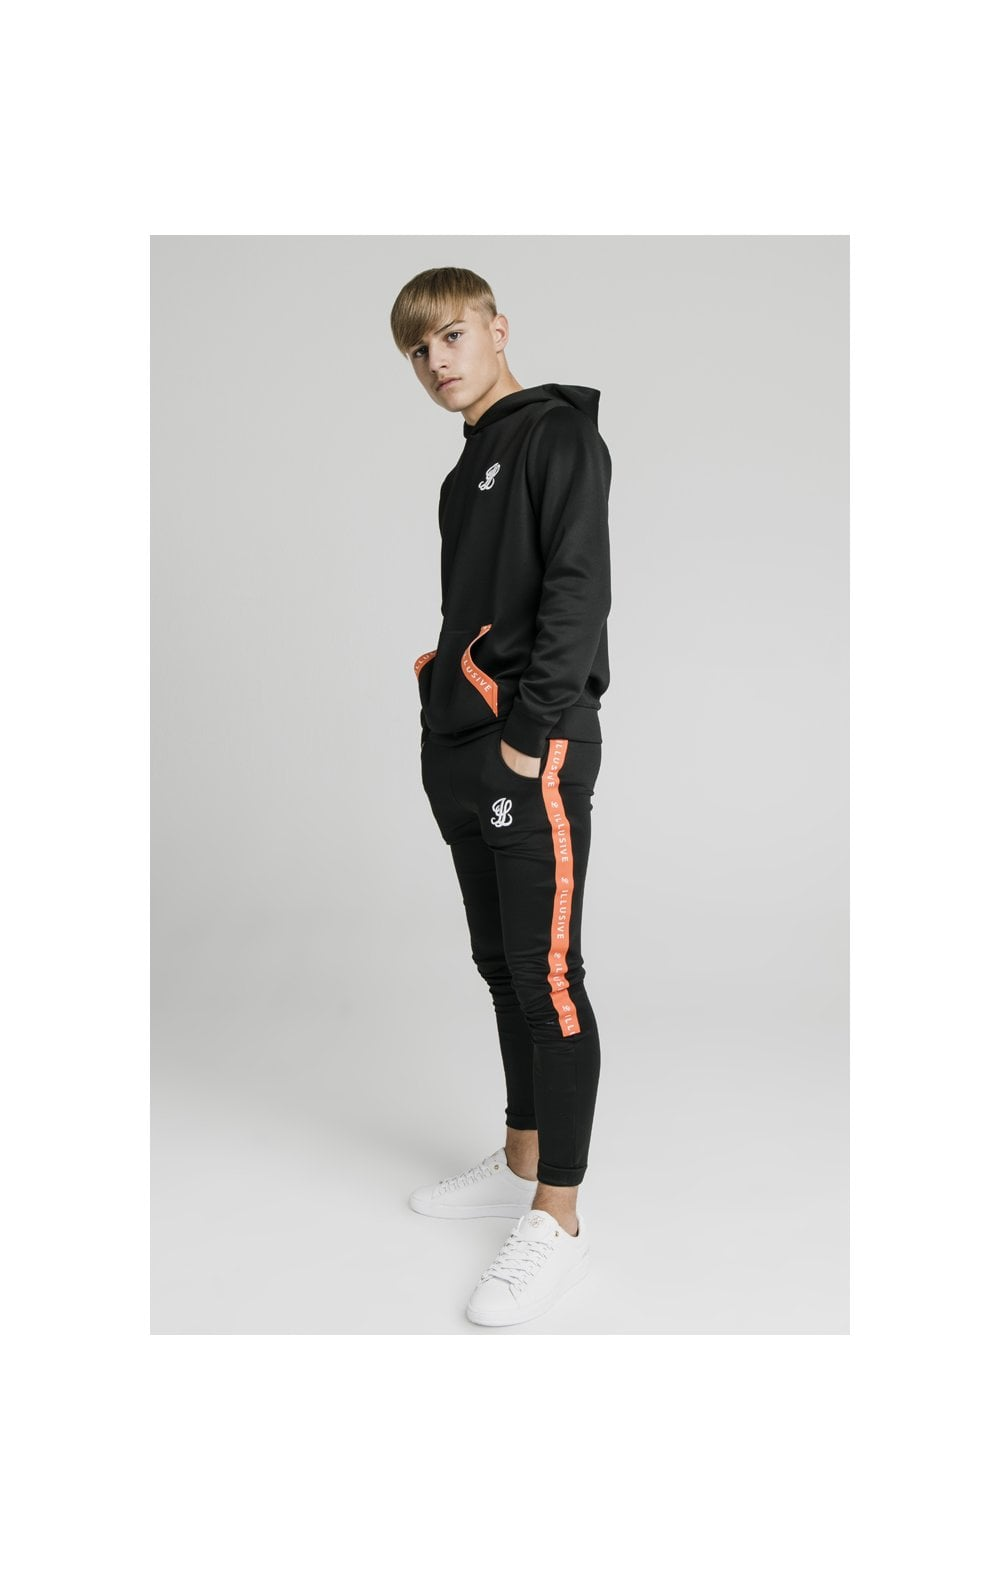 Illusive London Back Tape Zip Through Hoodie - Black (2)